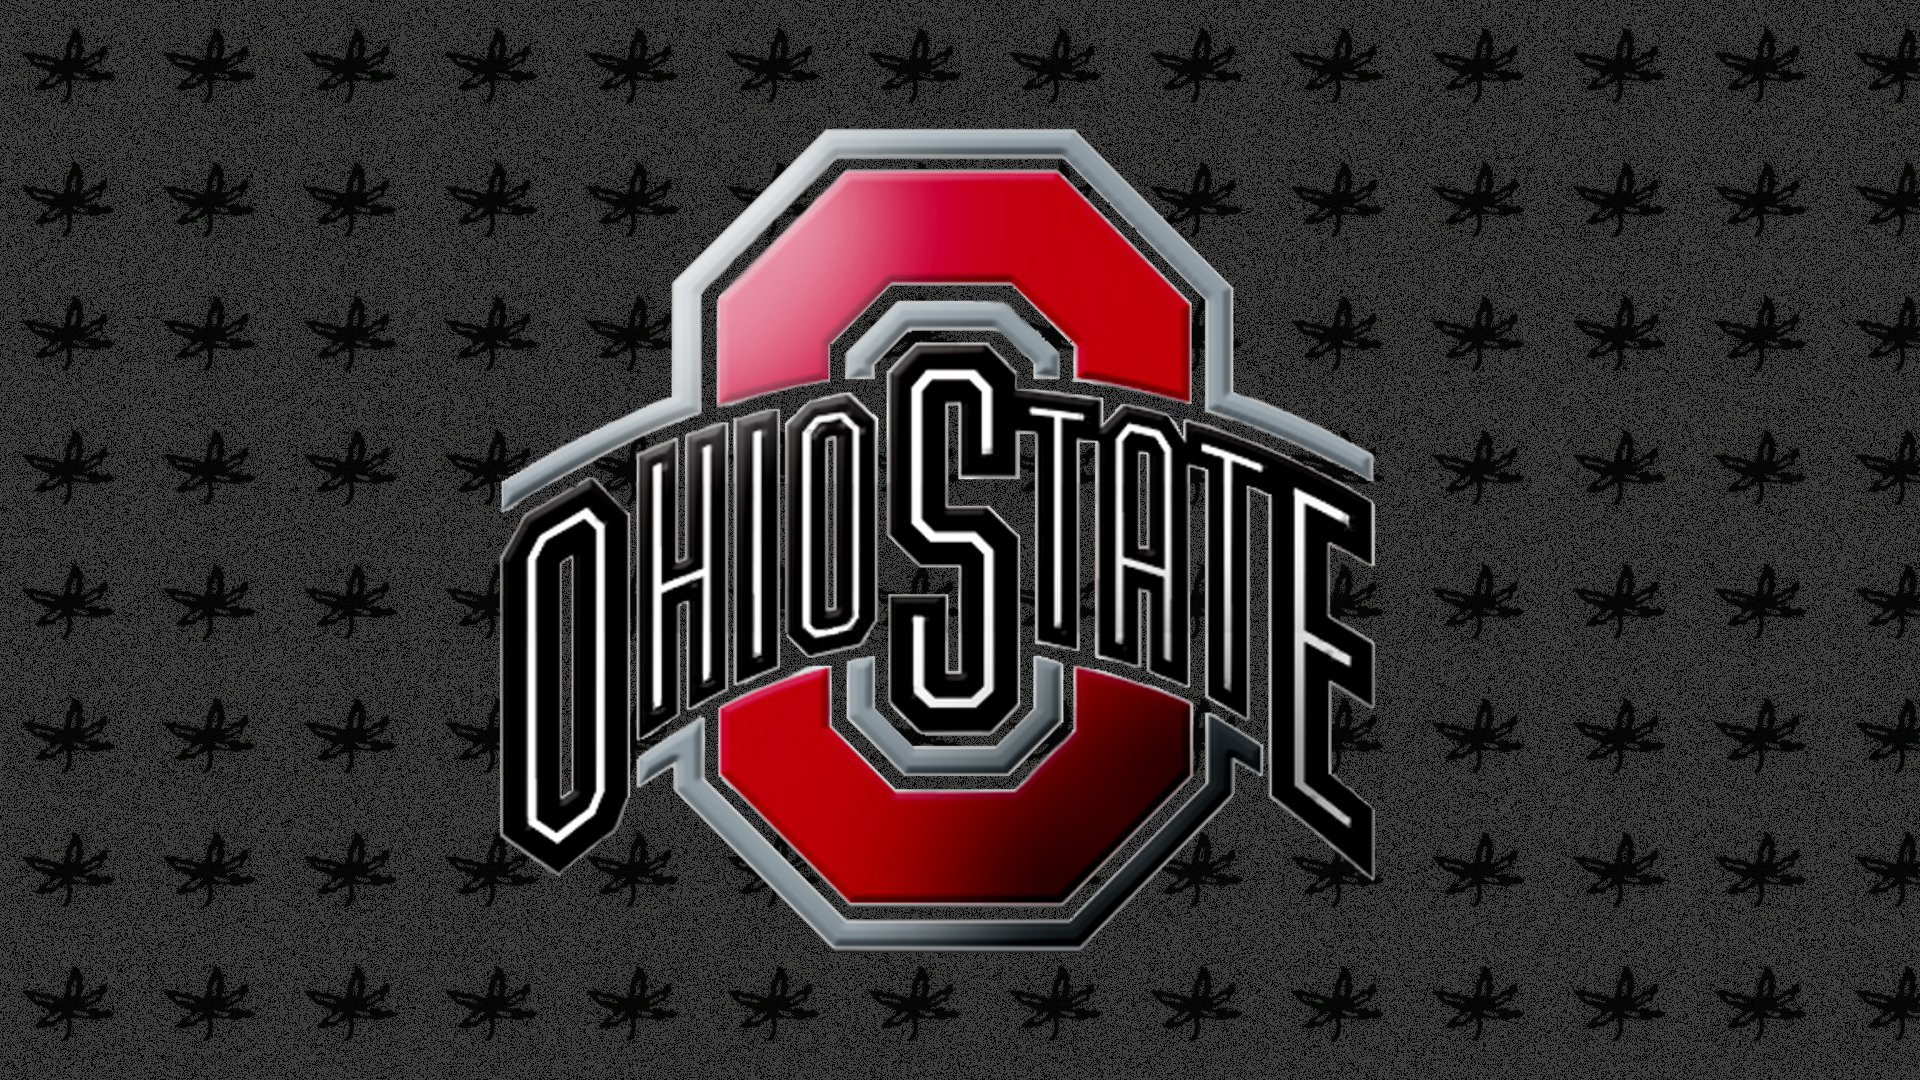 OSU Desktop Wallpaper 55   Ohio State Football Wallpaper 28971119 1920x1080